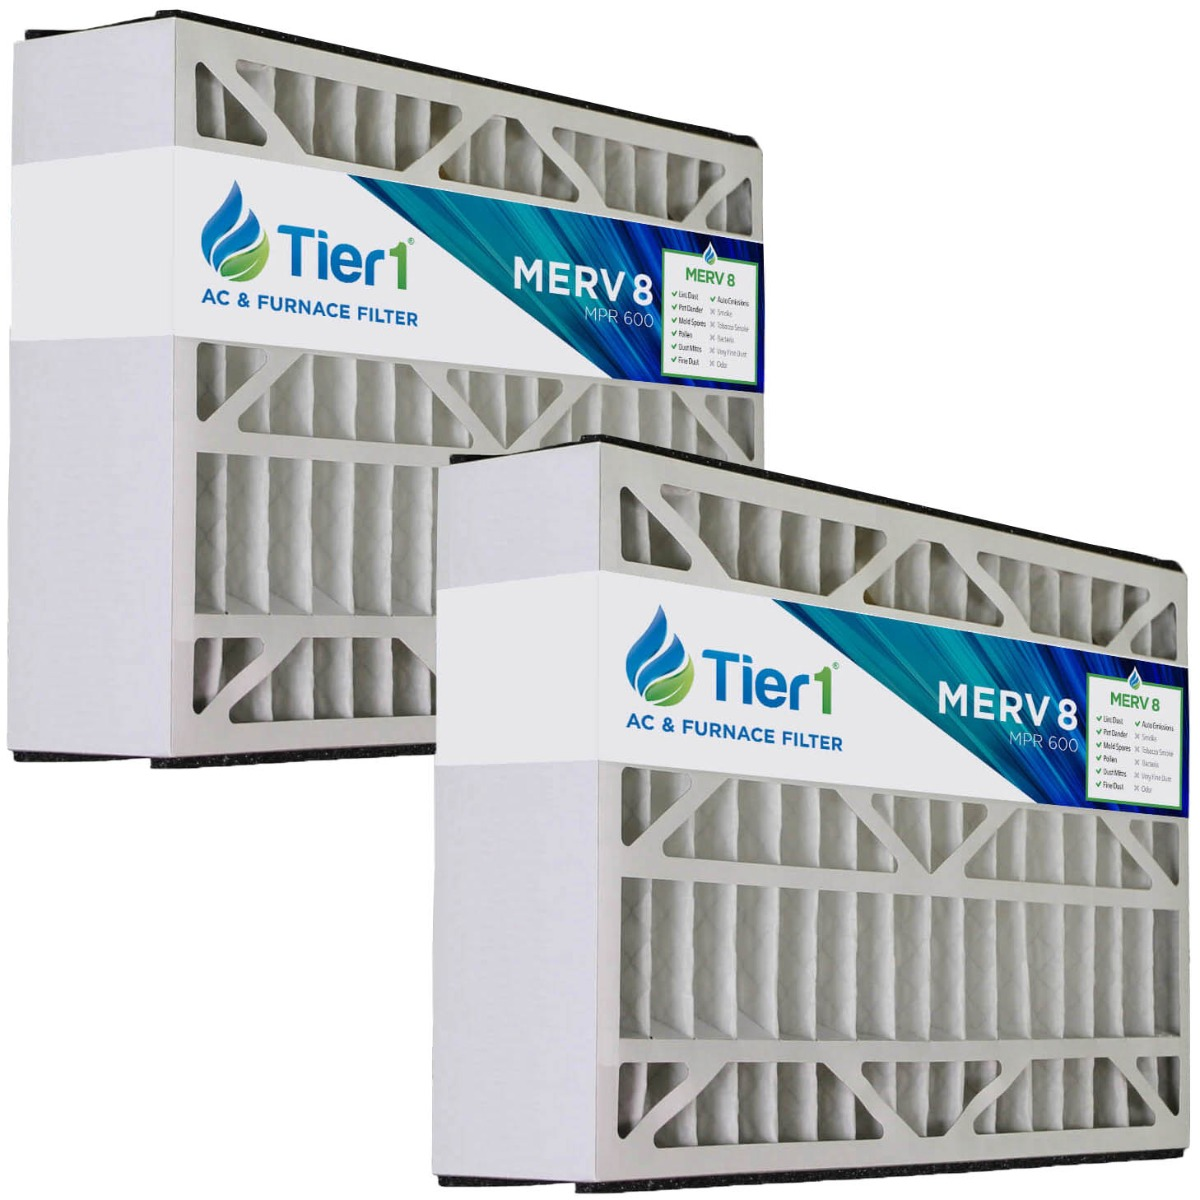 Tier1 21x27x5 Merv 8 Replacement For Trane Flr06070 Bayftr21m Air Filter 2 Pack Walmart Com Walmart Com